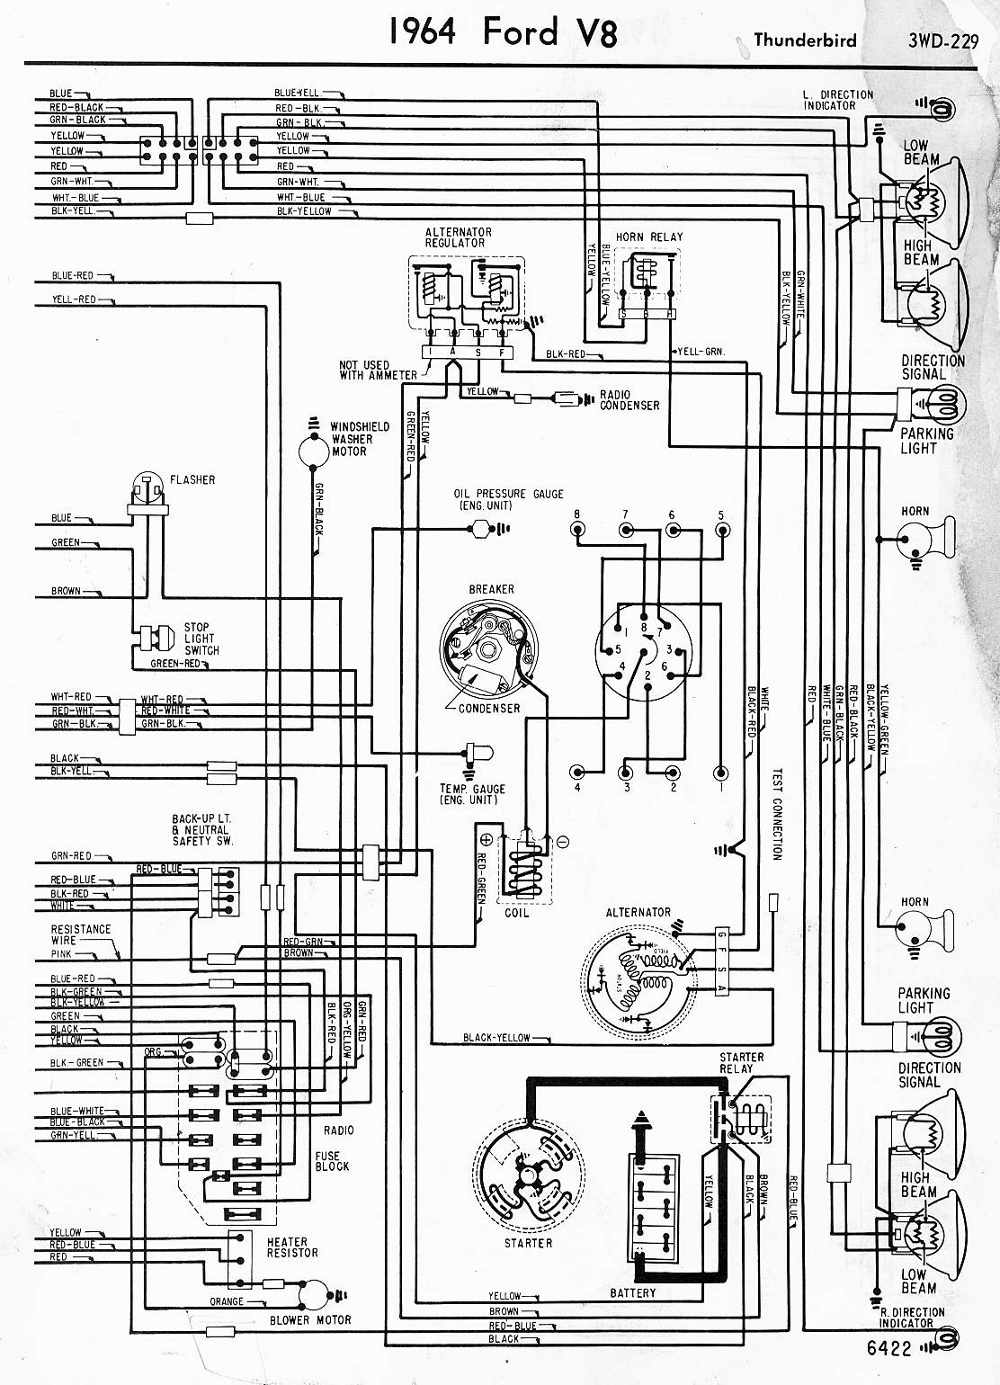 free electrical drawing at getdrawings free for personal use 2005 Ford Explorer Fuse Box Diagram 1000x1385 wiring diagrams schematic software car electrical schematics car